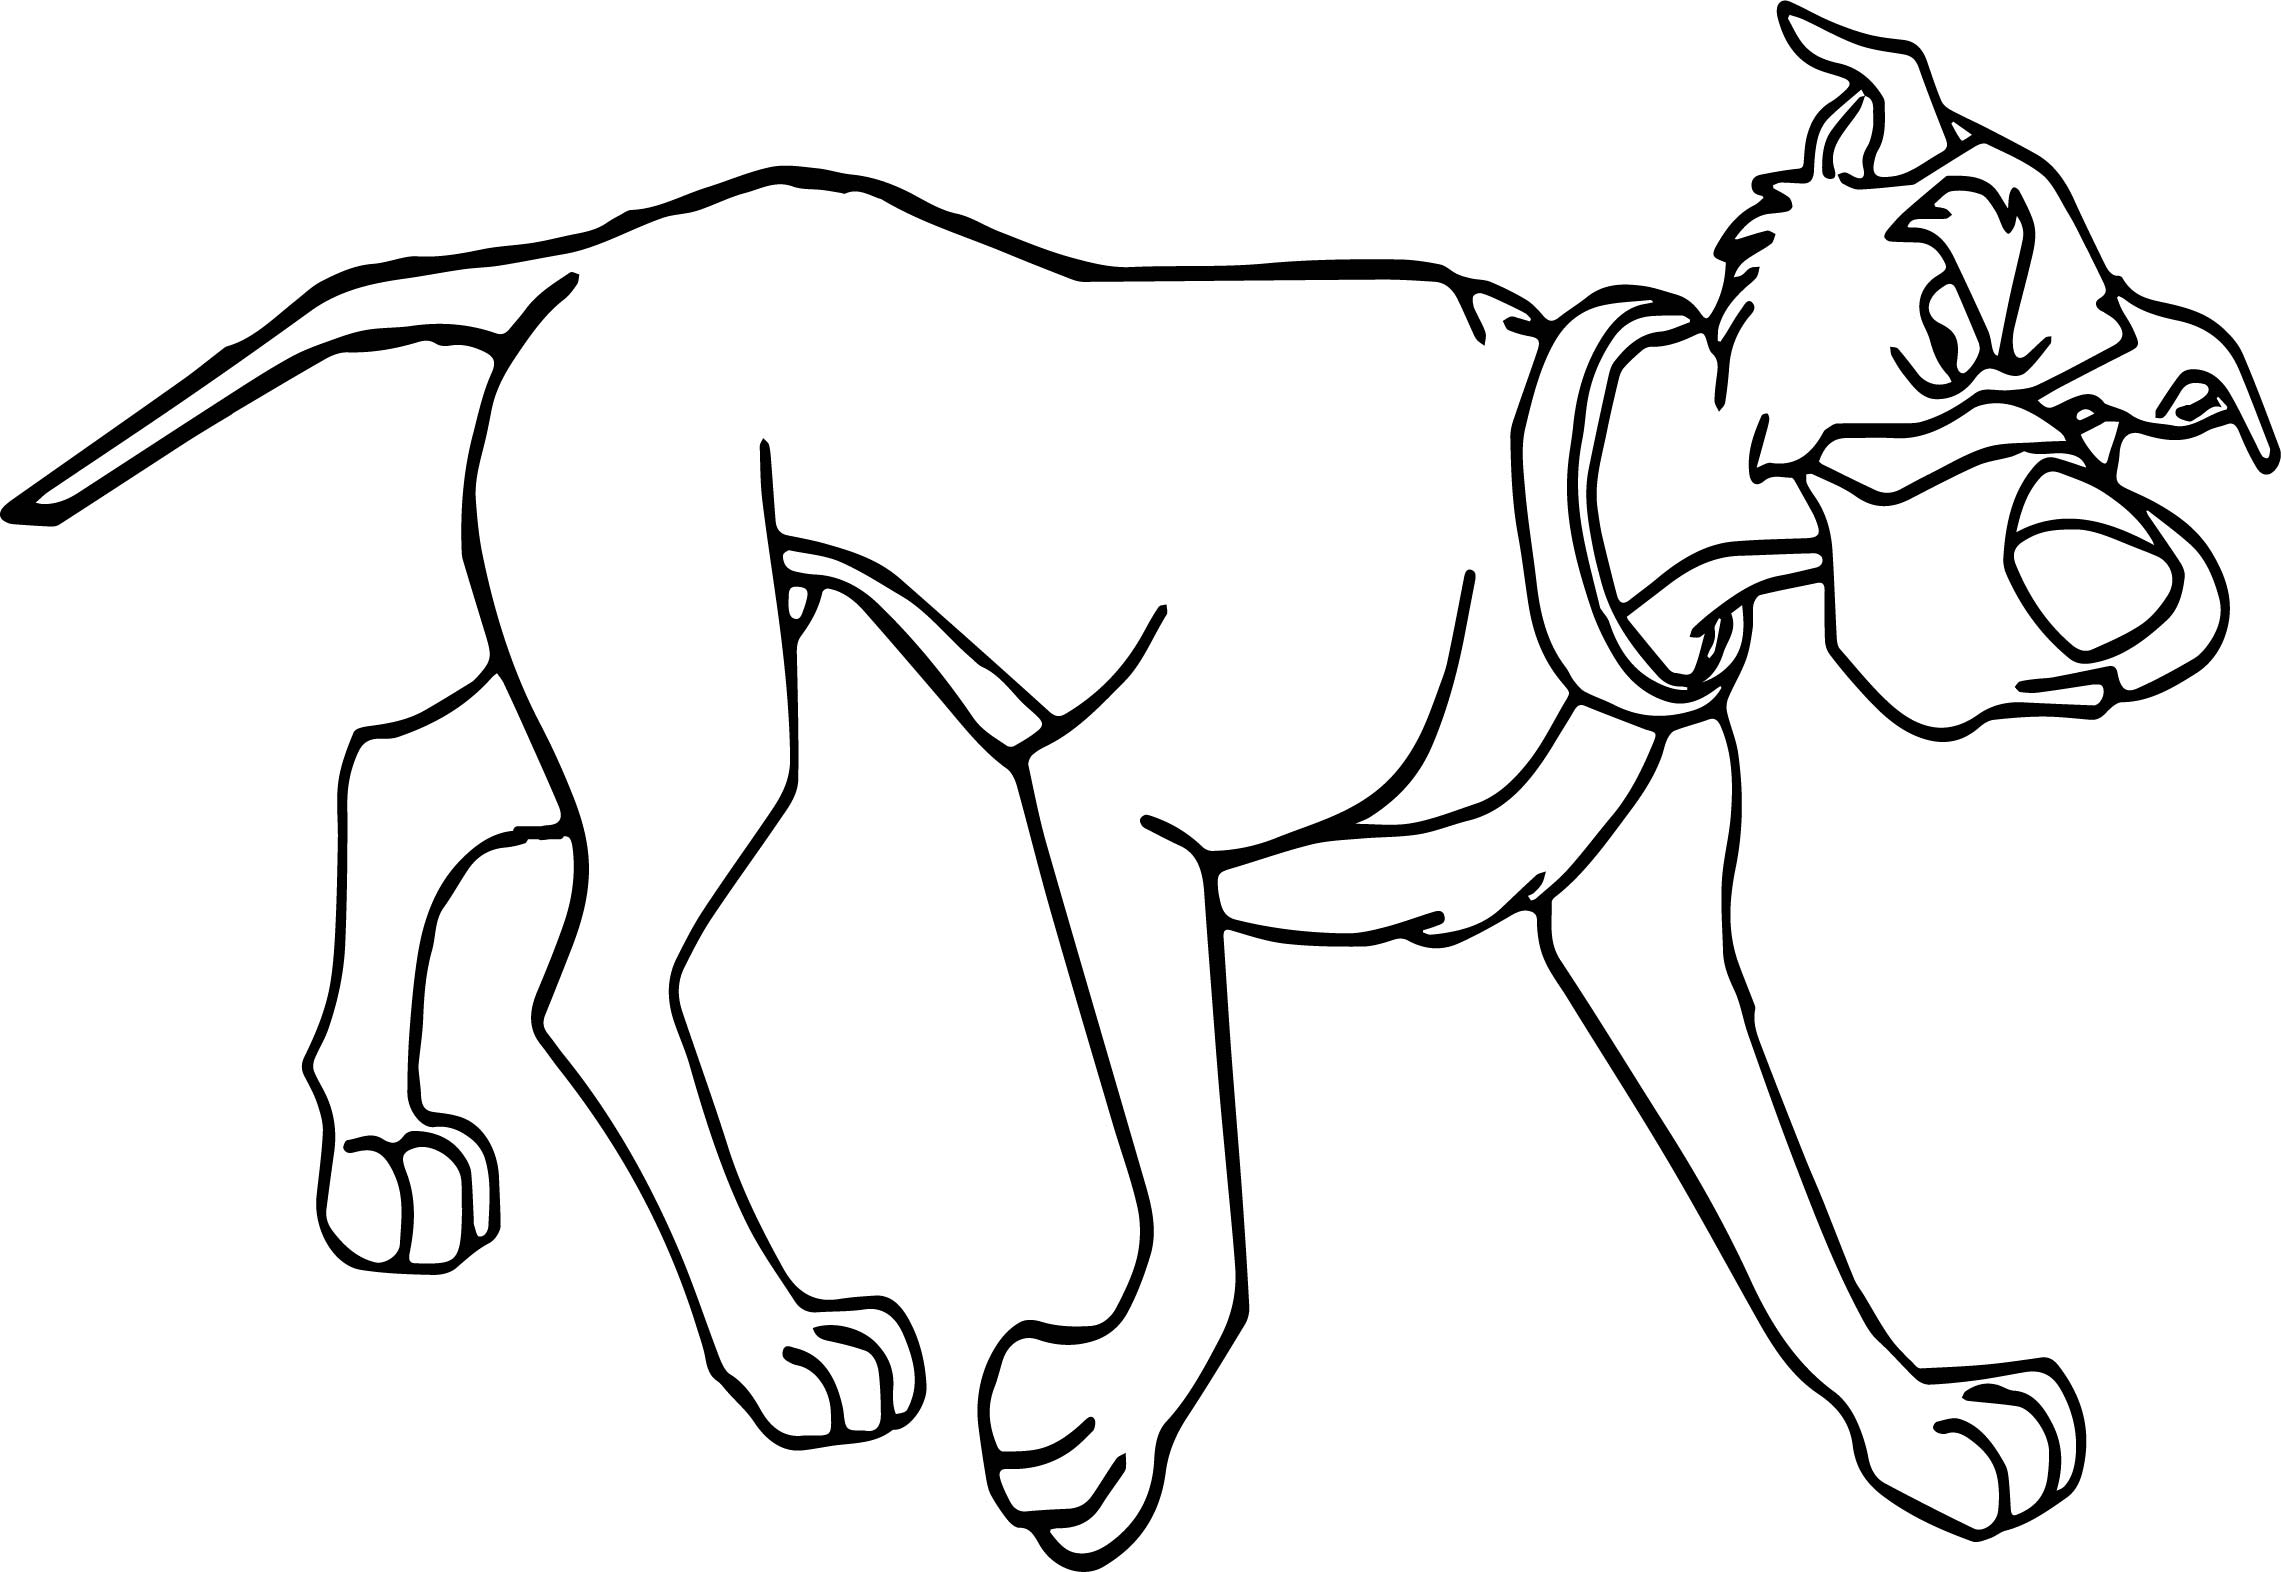 Fox And The Hound Coloring Pages Free Coloring Pages Download ...